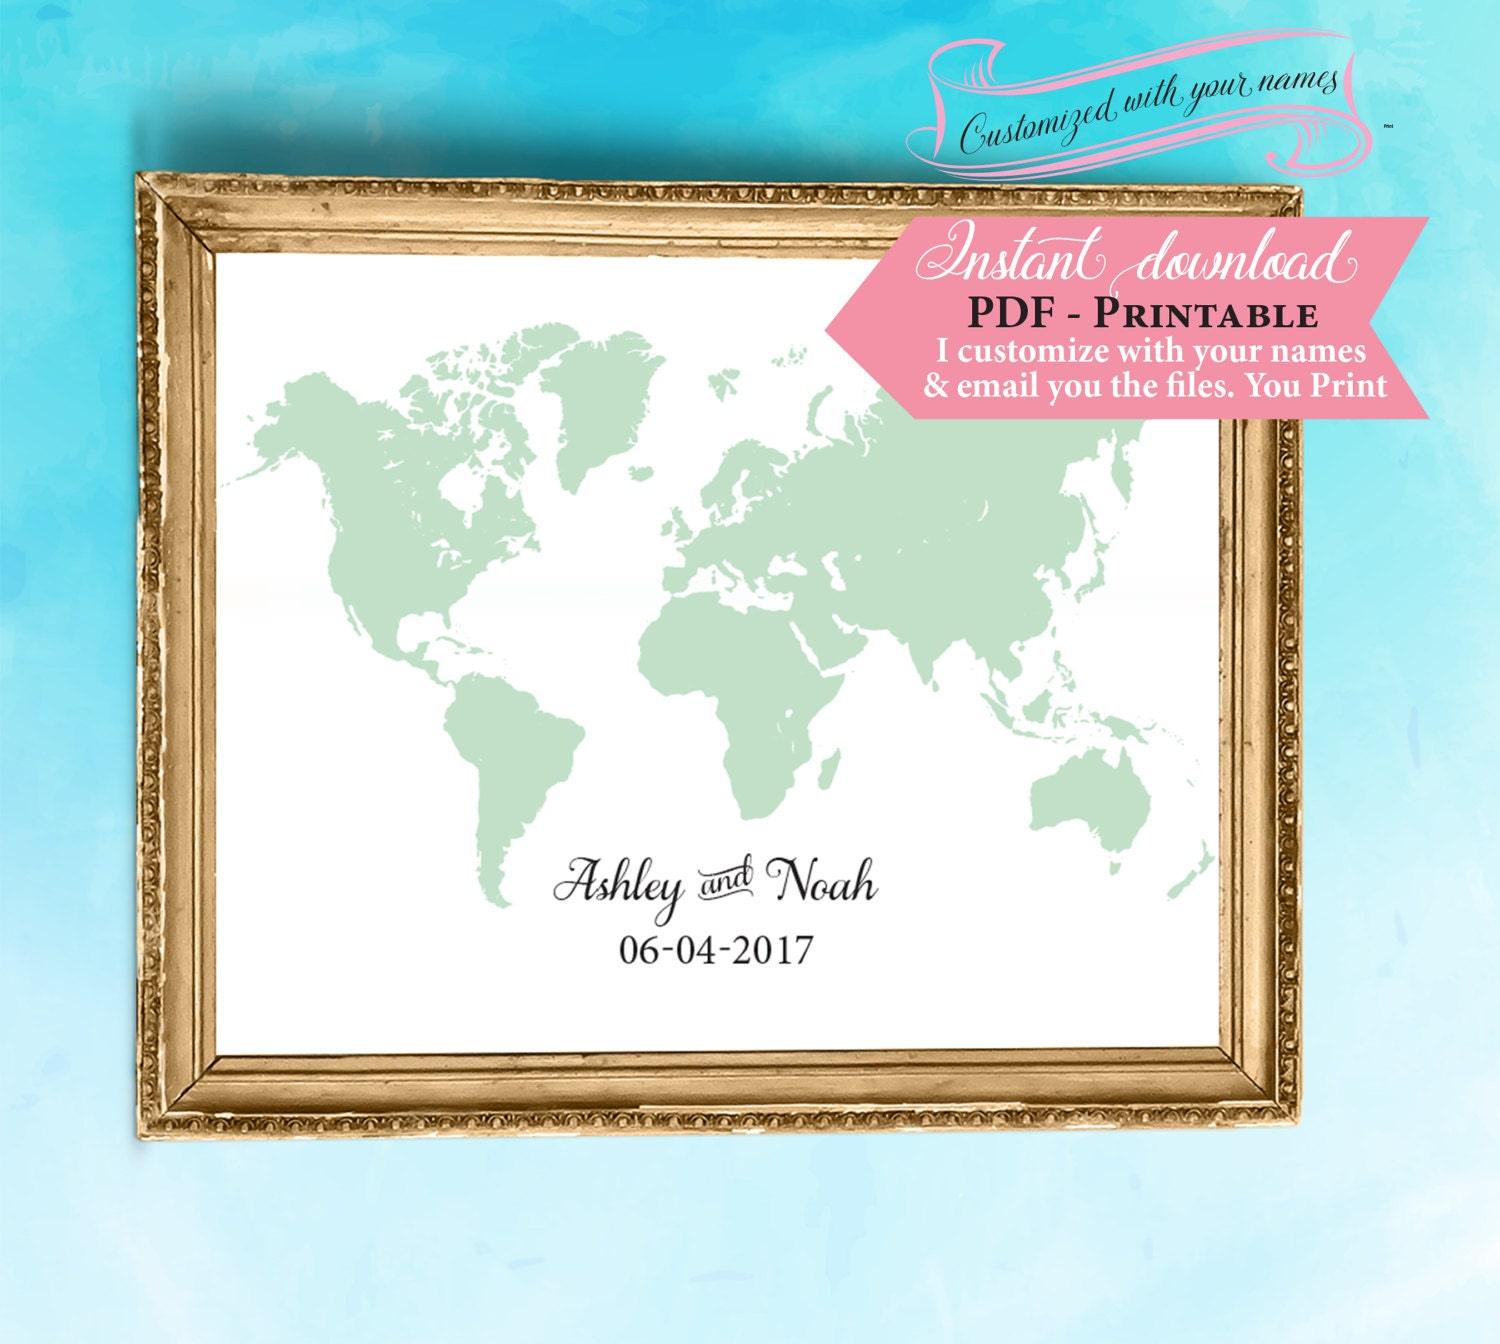 World map guest book template wedding sign printable sign world map guest book template wedding sign printable sign printable wedding sign guestbook sign print instant download pdf diy gumiabroncs Choice Image